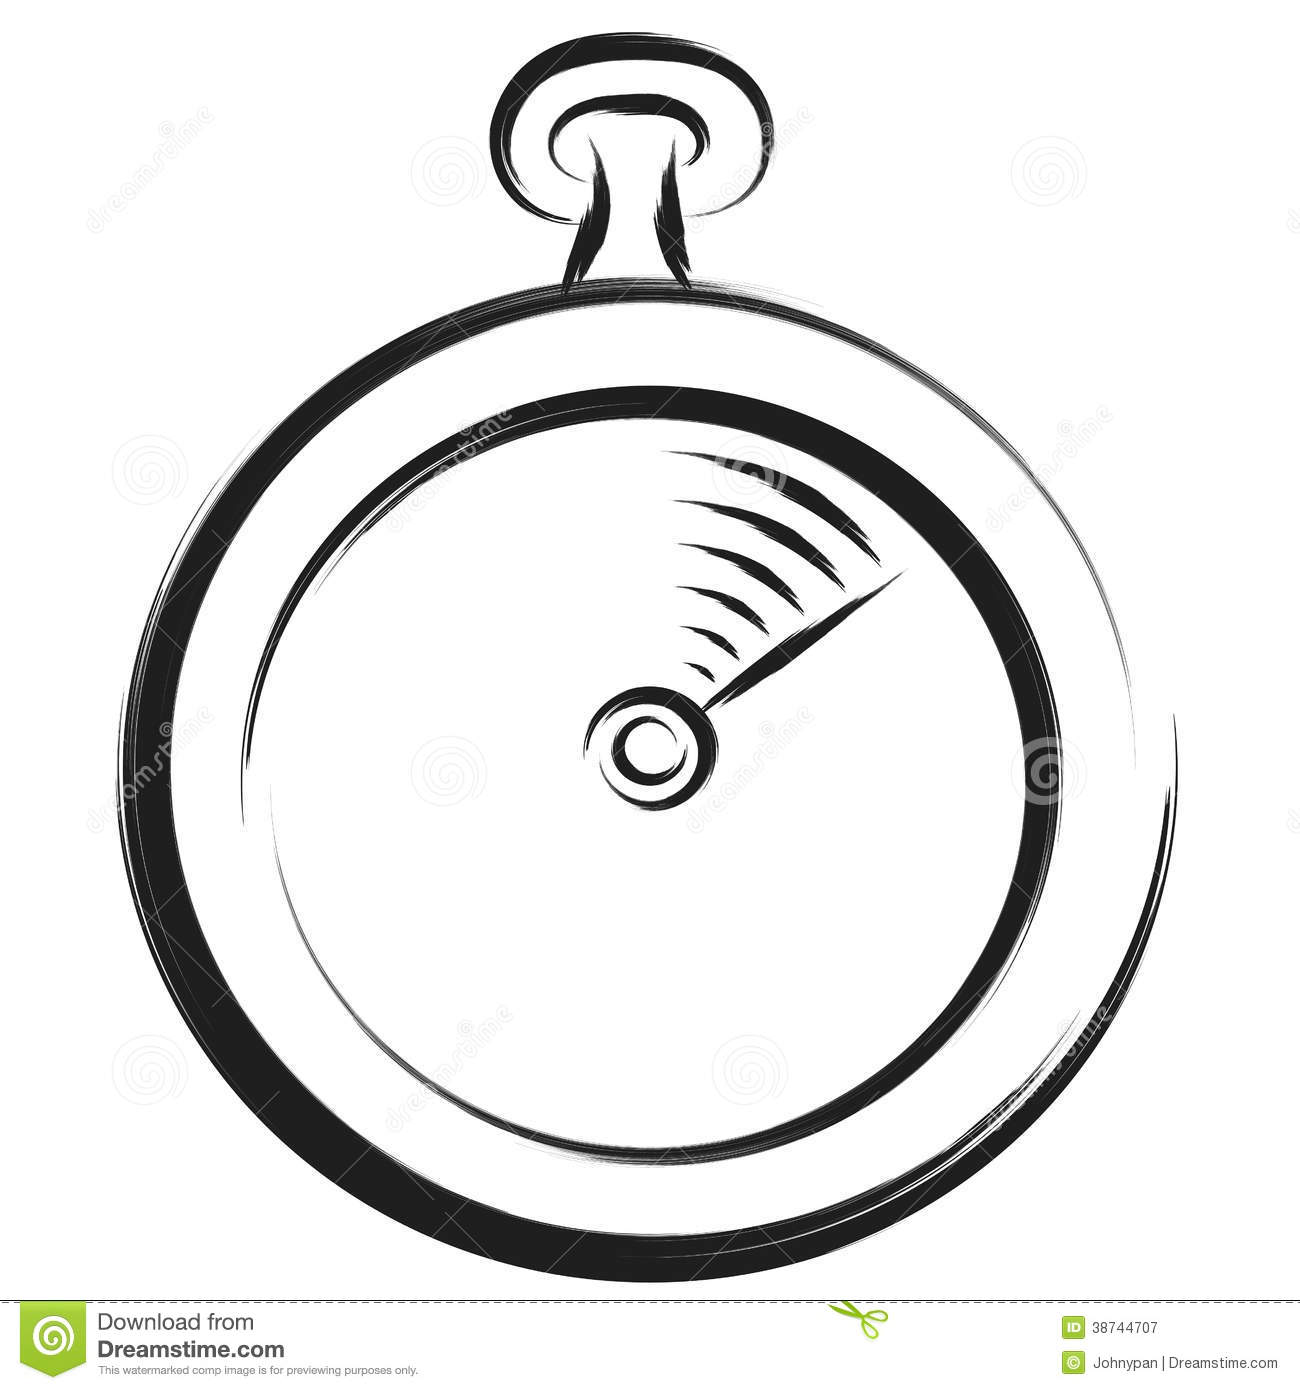 Stopwatch Sketch Royalty Free Stock Photography Image